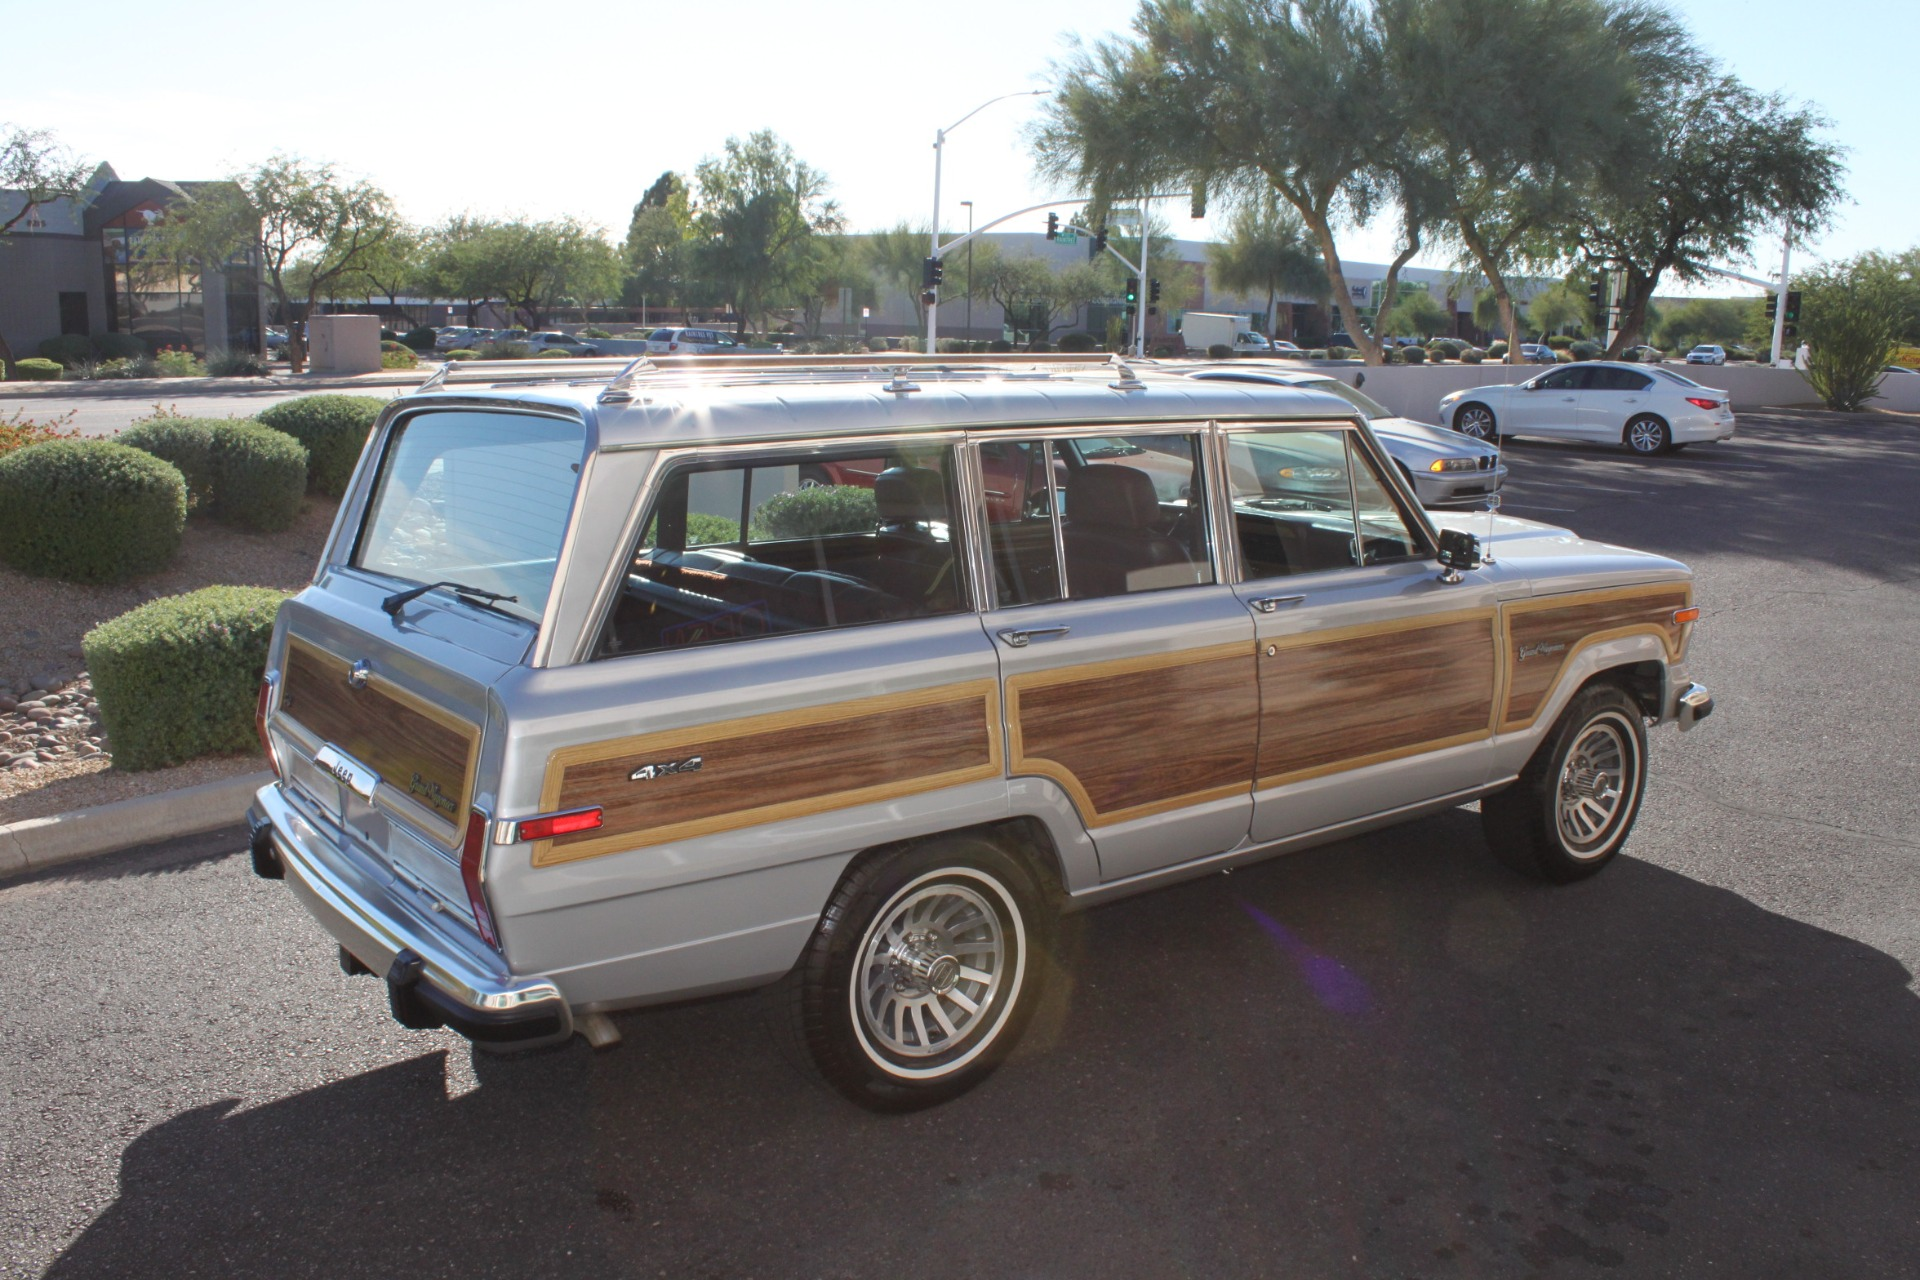 Used-1989-Jeep-Grand-Wagoneer-Toyota